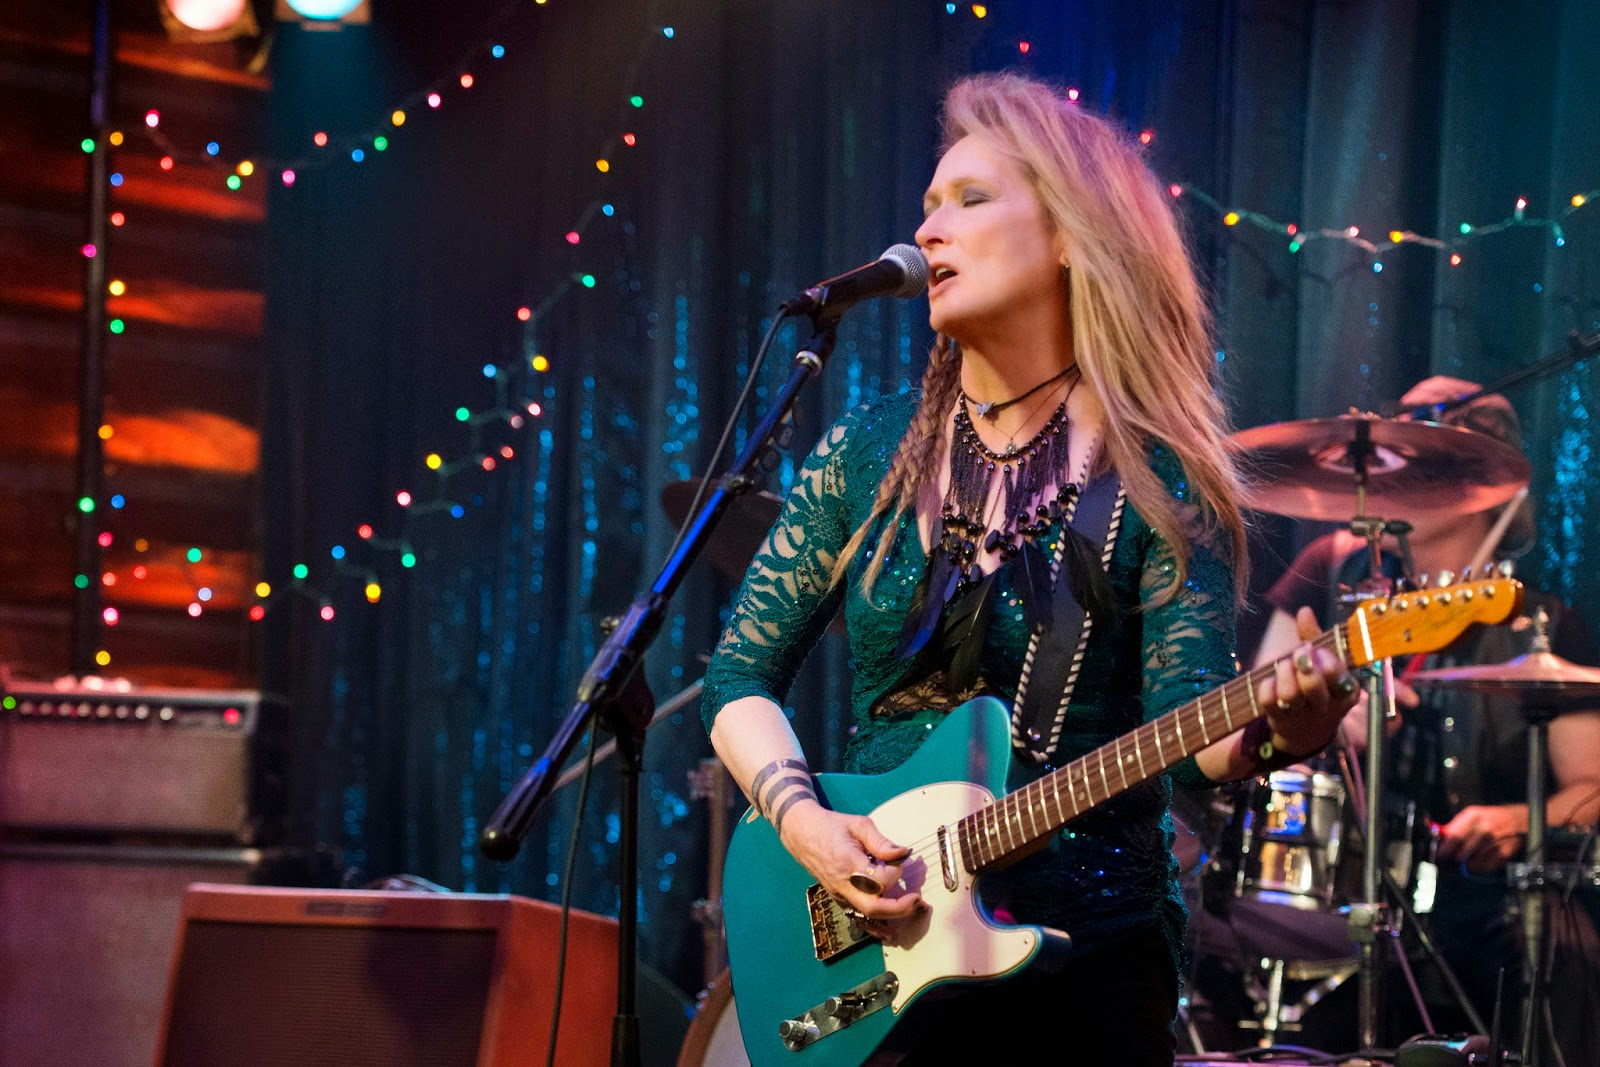 Primera imagen de Meryl Streep en 'Ricki and the Flash'